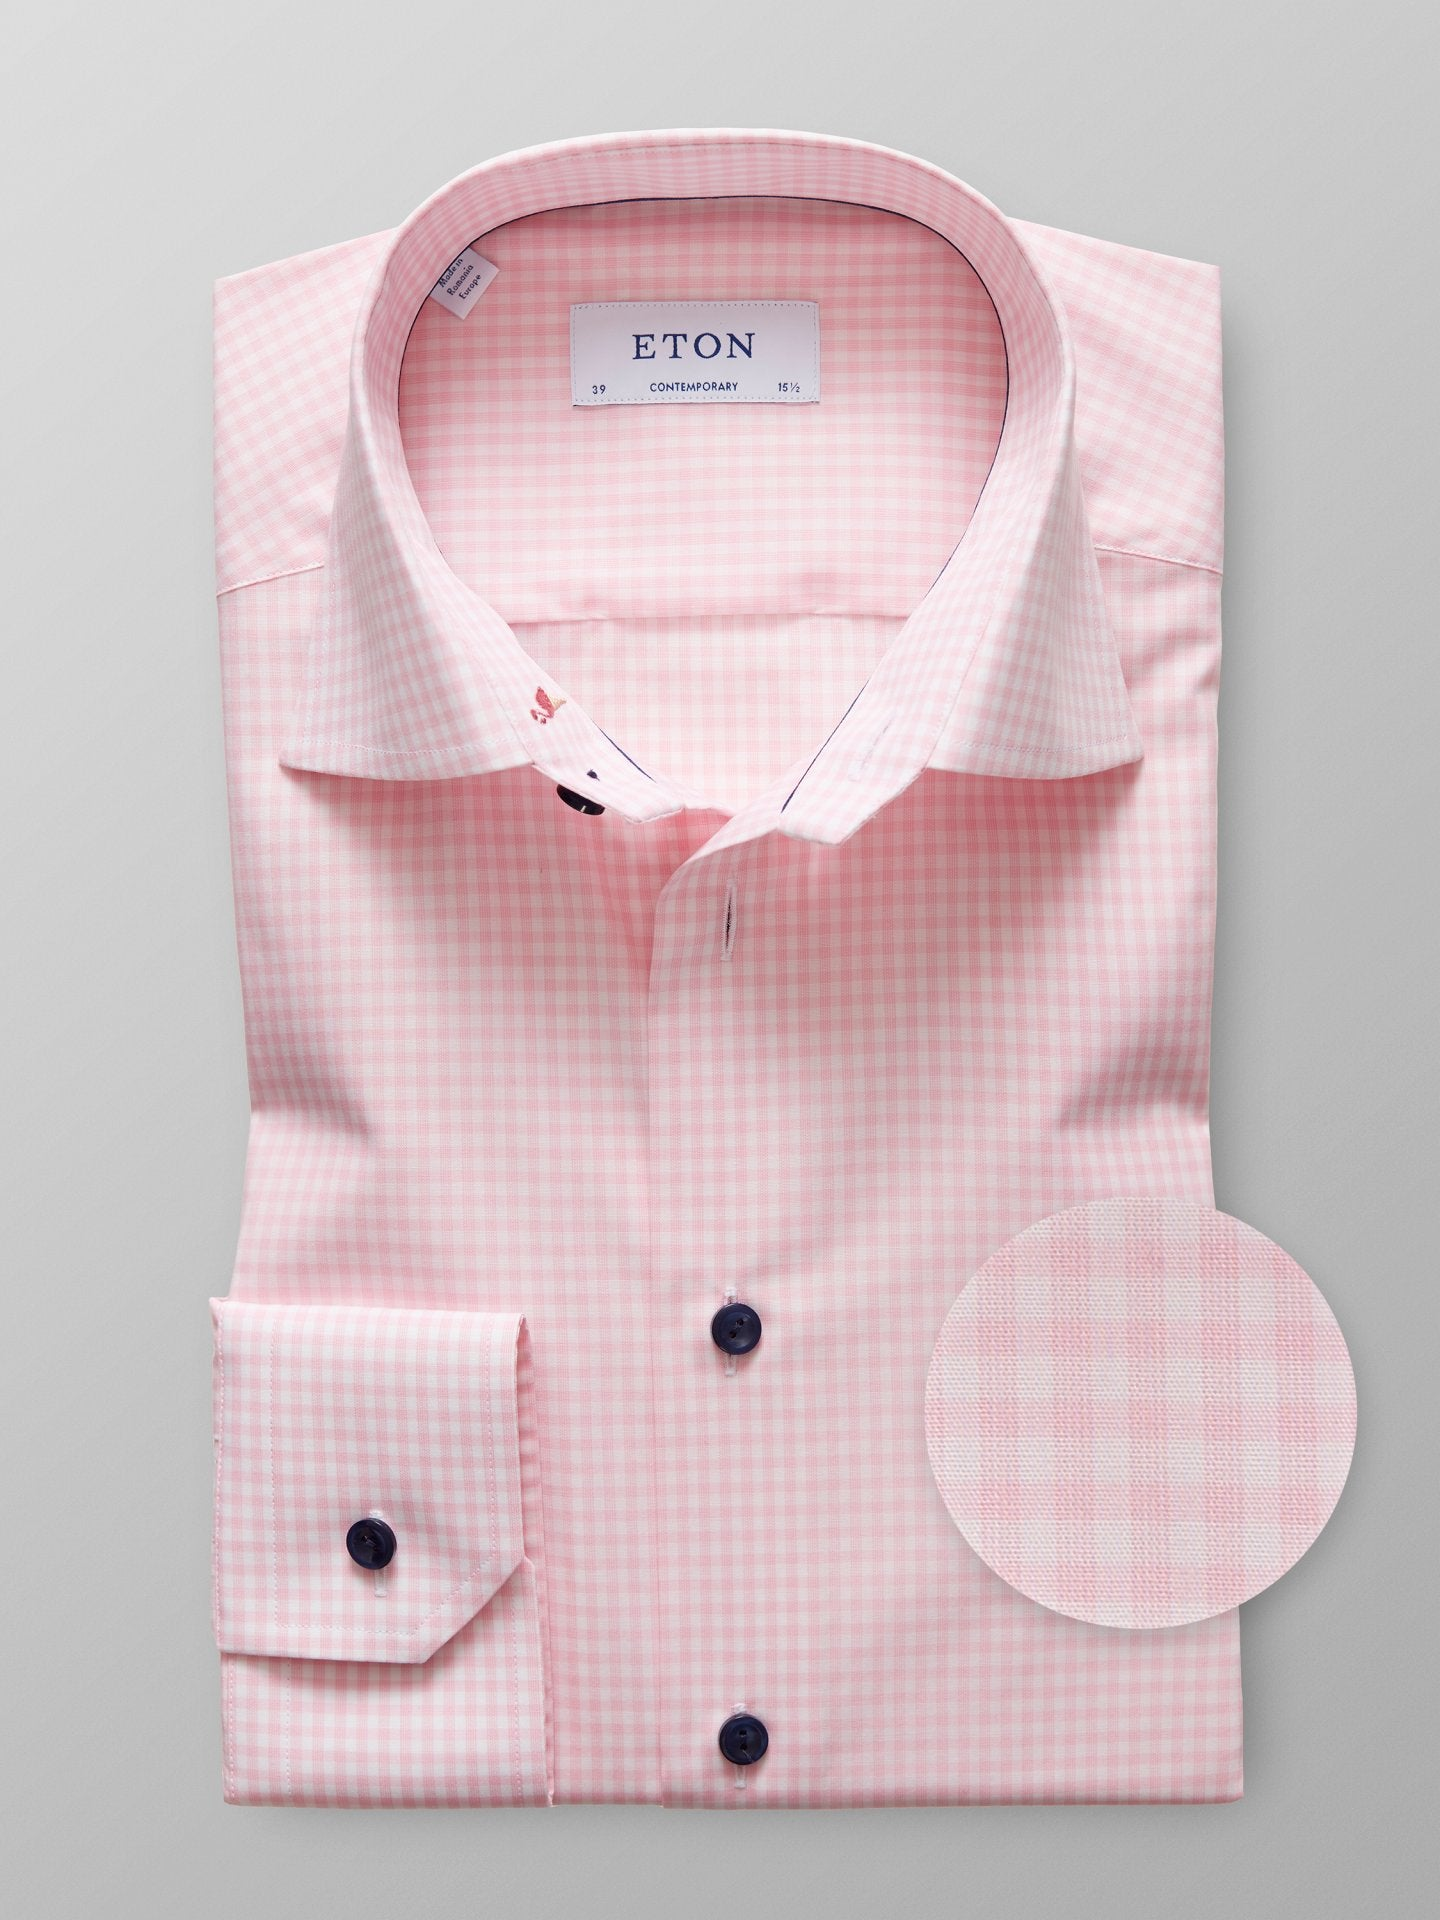 Contempo Pink Check Shirt with Embroidery